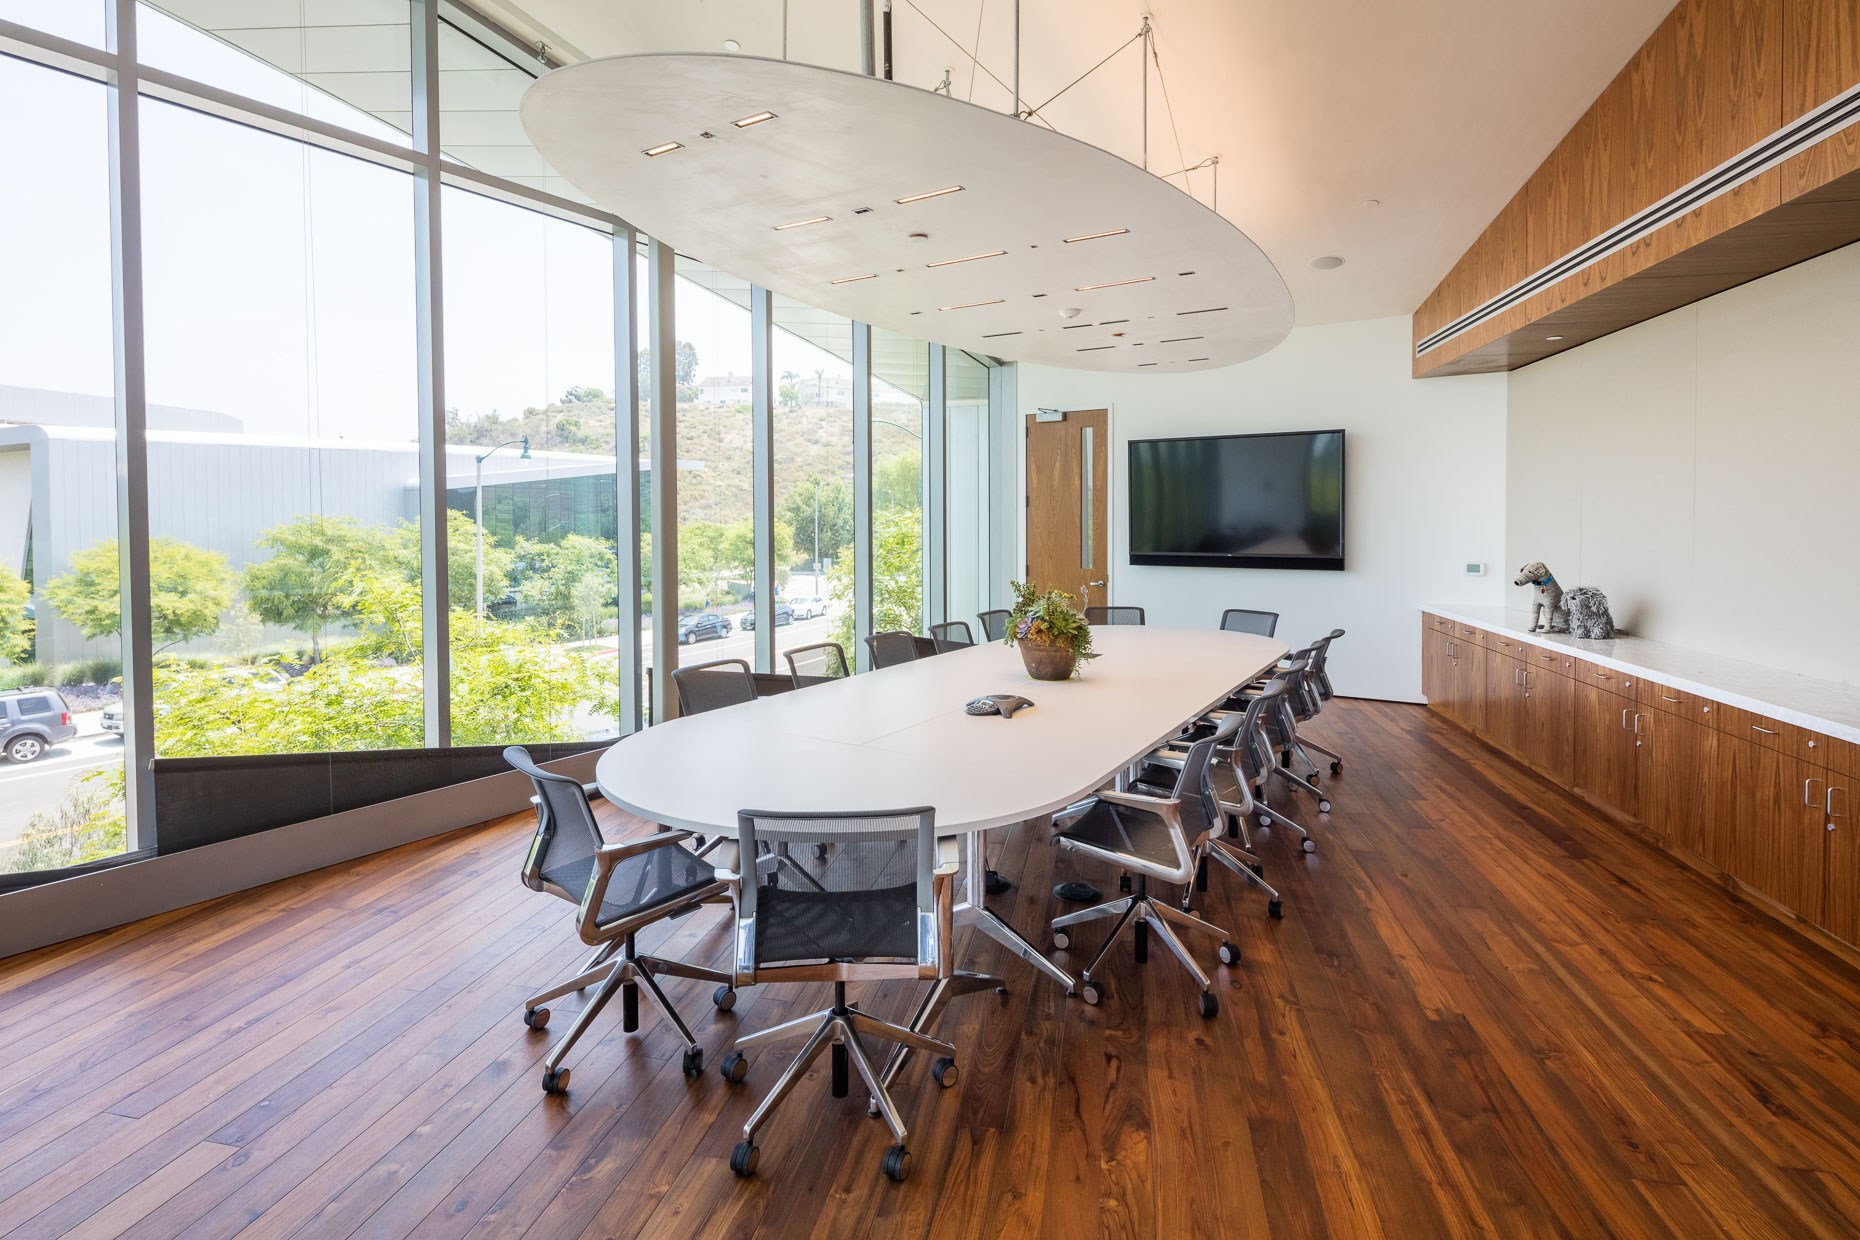 Architecture shot of conference room in modern building.  David Zaitz Photography.